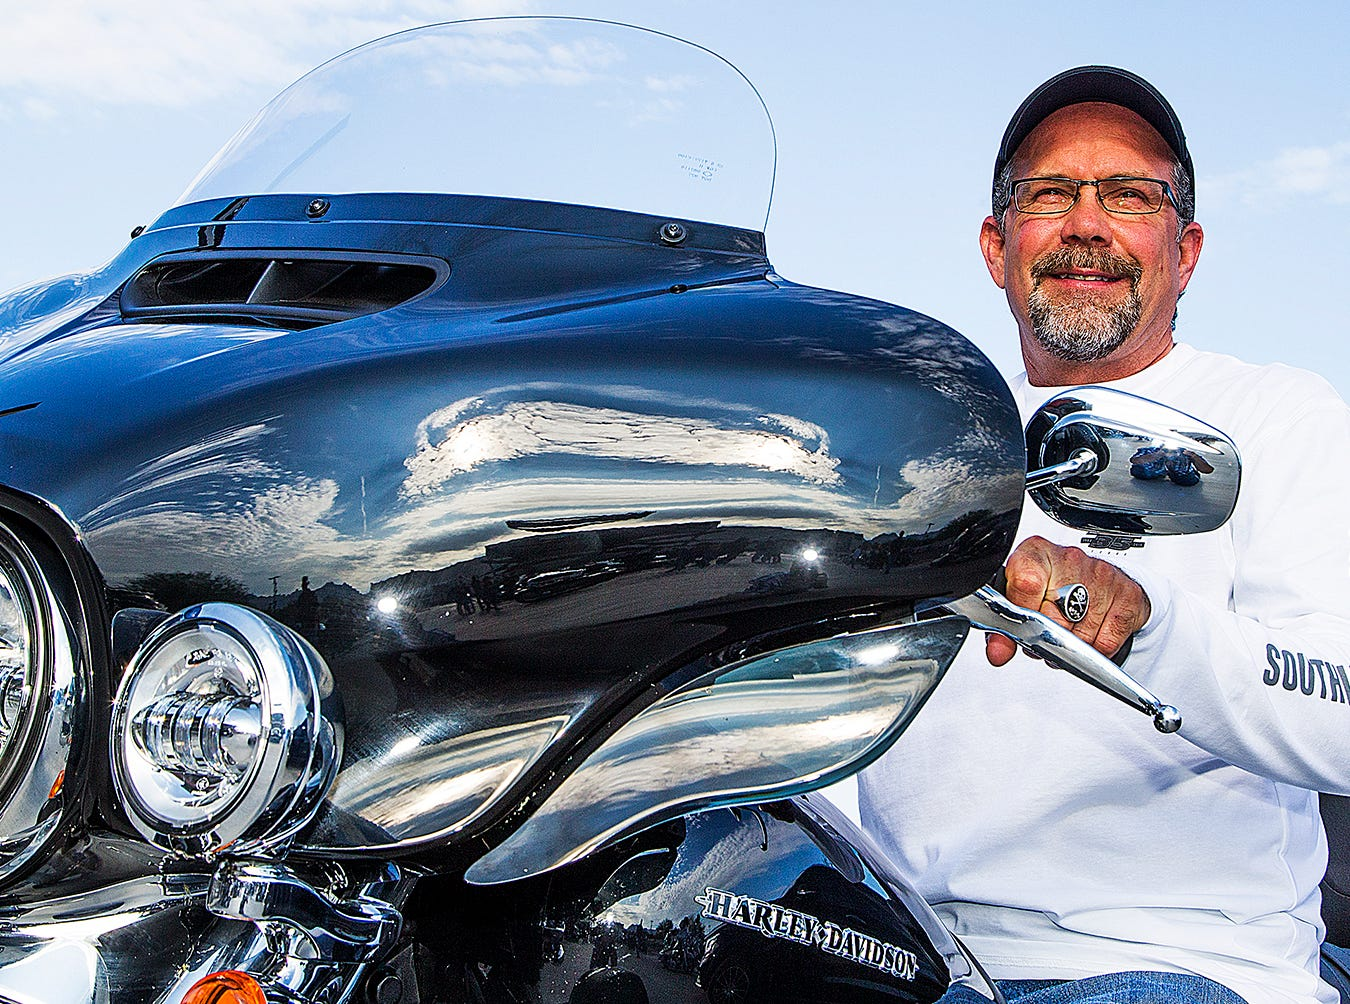 Bill Davidson, the great-grandson of William Davidson, sits atop his Harley in Scottsdale, Arizona, Aug. 22.